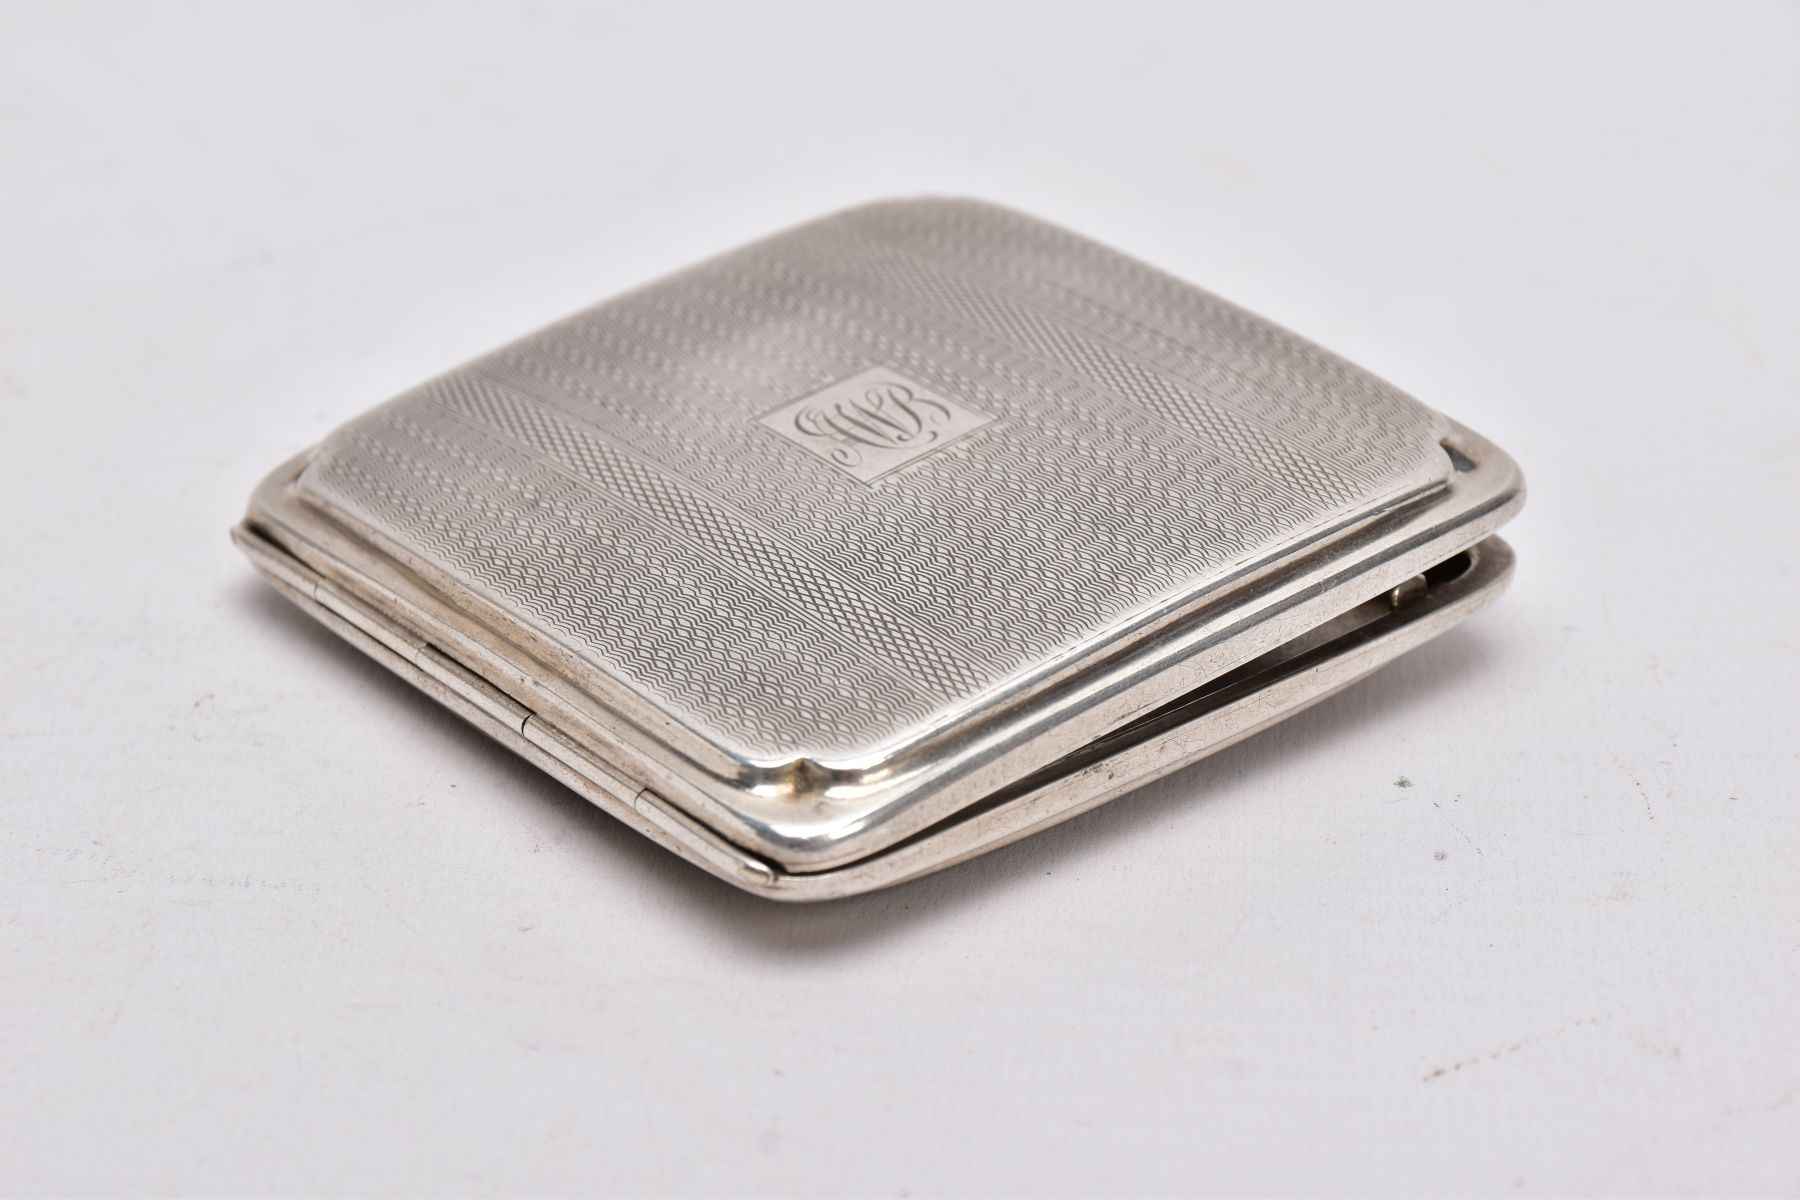 A SILVER CIGARETTE CASE, of an engine turn design, engraved monogram, missing elastic straps on - Image 3 of 3